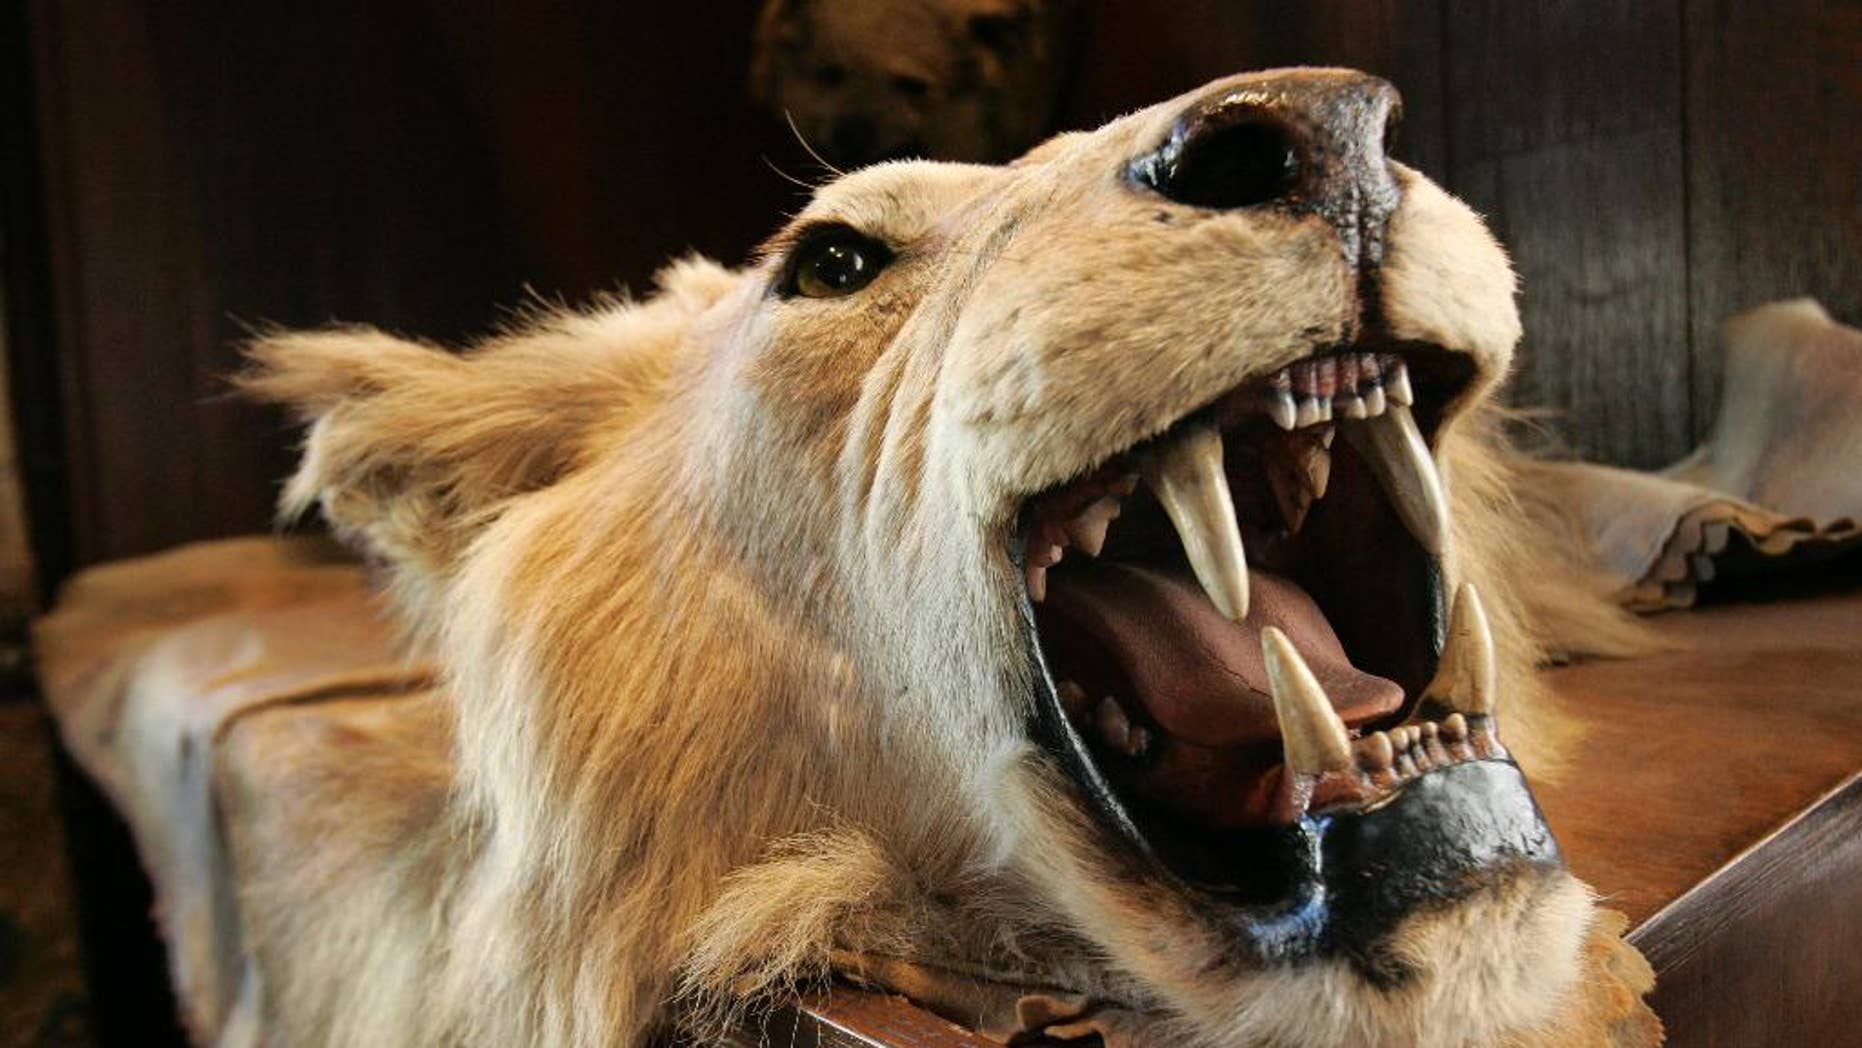 Delta has banned the shipment of lion, leopard, elephant, rhinoceros and buffalo trophies.